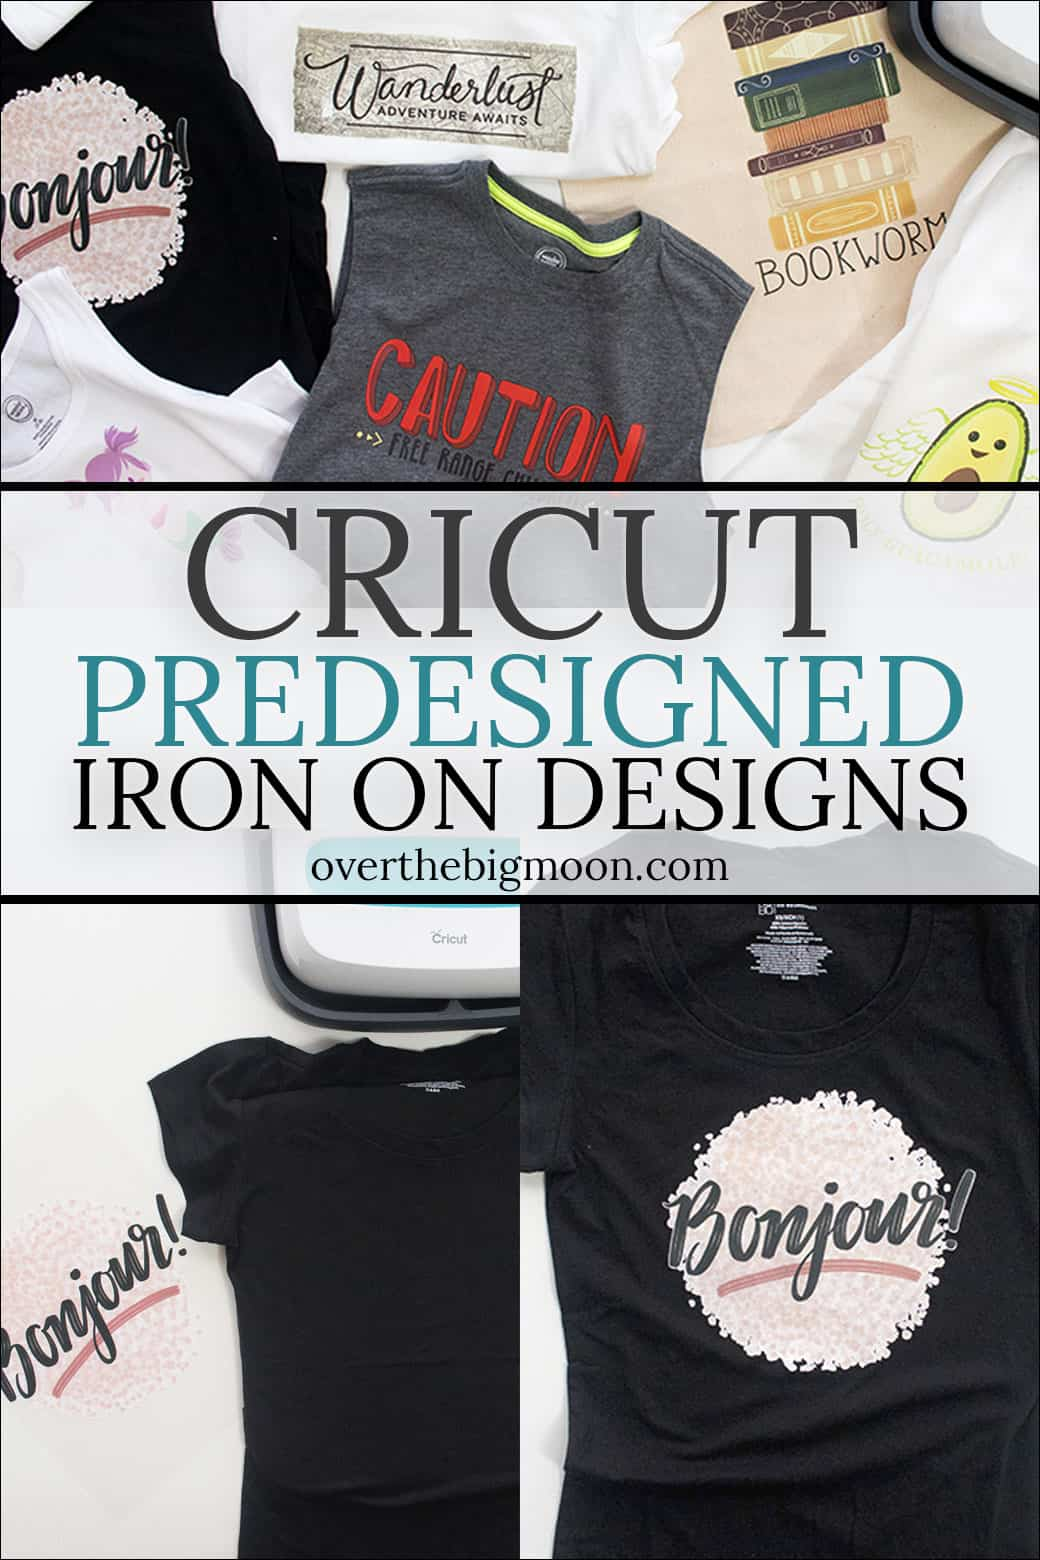 Cricut PreDesigned Iron On Designs are a game changer for crafters of all levels! The designs are affordable and way more detailed than what could be created layering Iron On! There are over 50 designs that could be used for all types of fabric - shirts, onesies, aprons, totes, pillowcases, dish towels, backpacks and more! Come check out everything you need to know! From overthebigmoon.com! #ironon #cricut #cricutmade #cricutcrafting #cricutmaker #easypress #htv